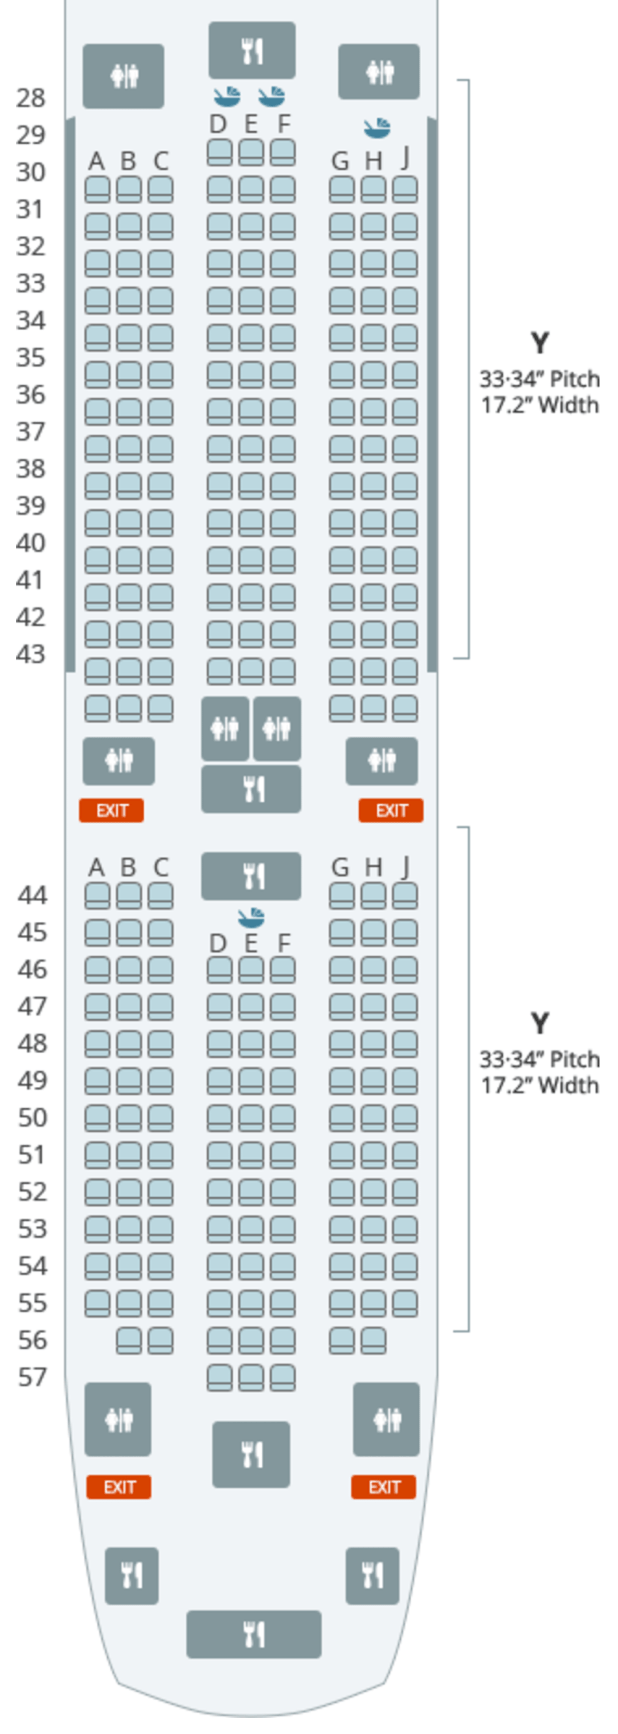 Here S A Seat Map To Help You Visualize The Cabin Arrangement Note That Two Of Seats Appear On Don T Actually Exist There Are No